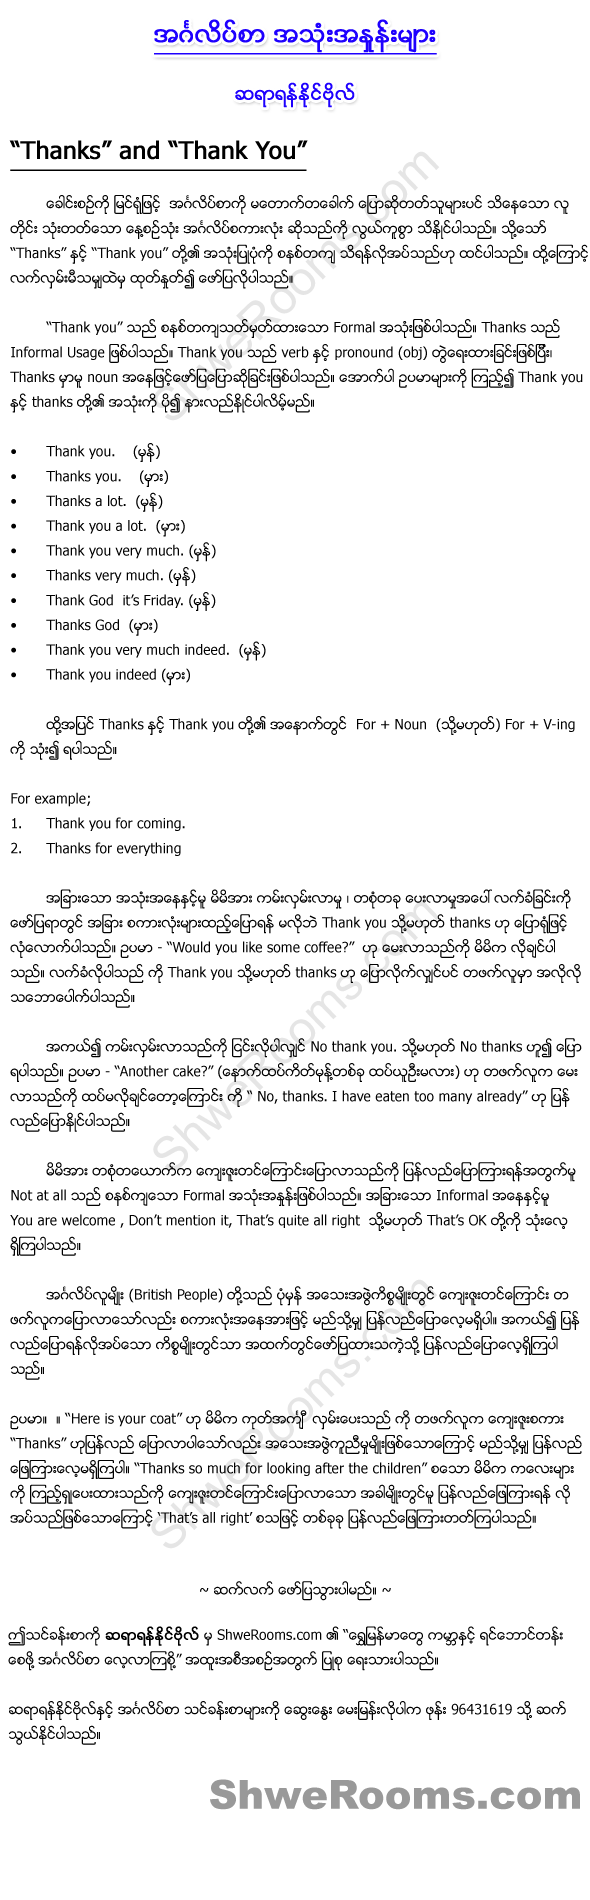 "Lesson 7: Thanks and Thank You. In this English lesson, Sayar Yan Naing Bo explains the difference between ""Thanks"" and ""Thank You"". He also gives the correct usage examples. If you think you know the usage of ""Thanks"" and ""Thank You"", you might be in for a surprise!"